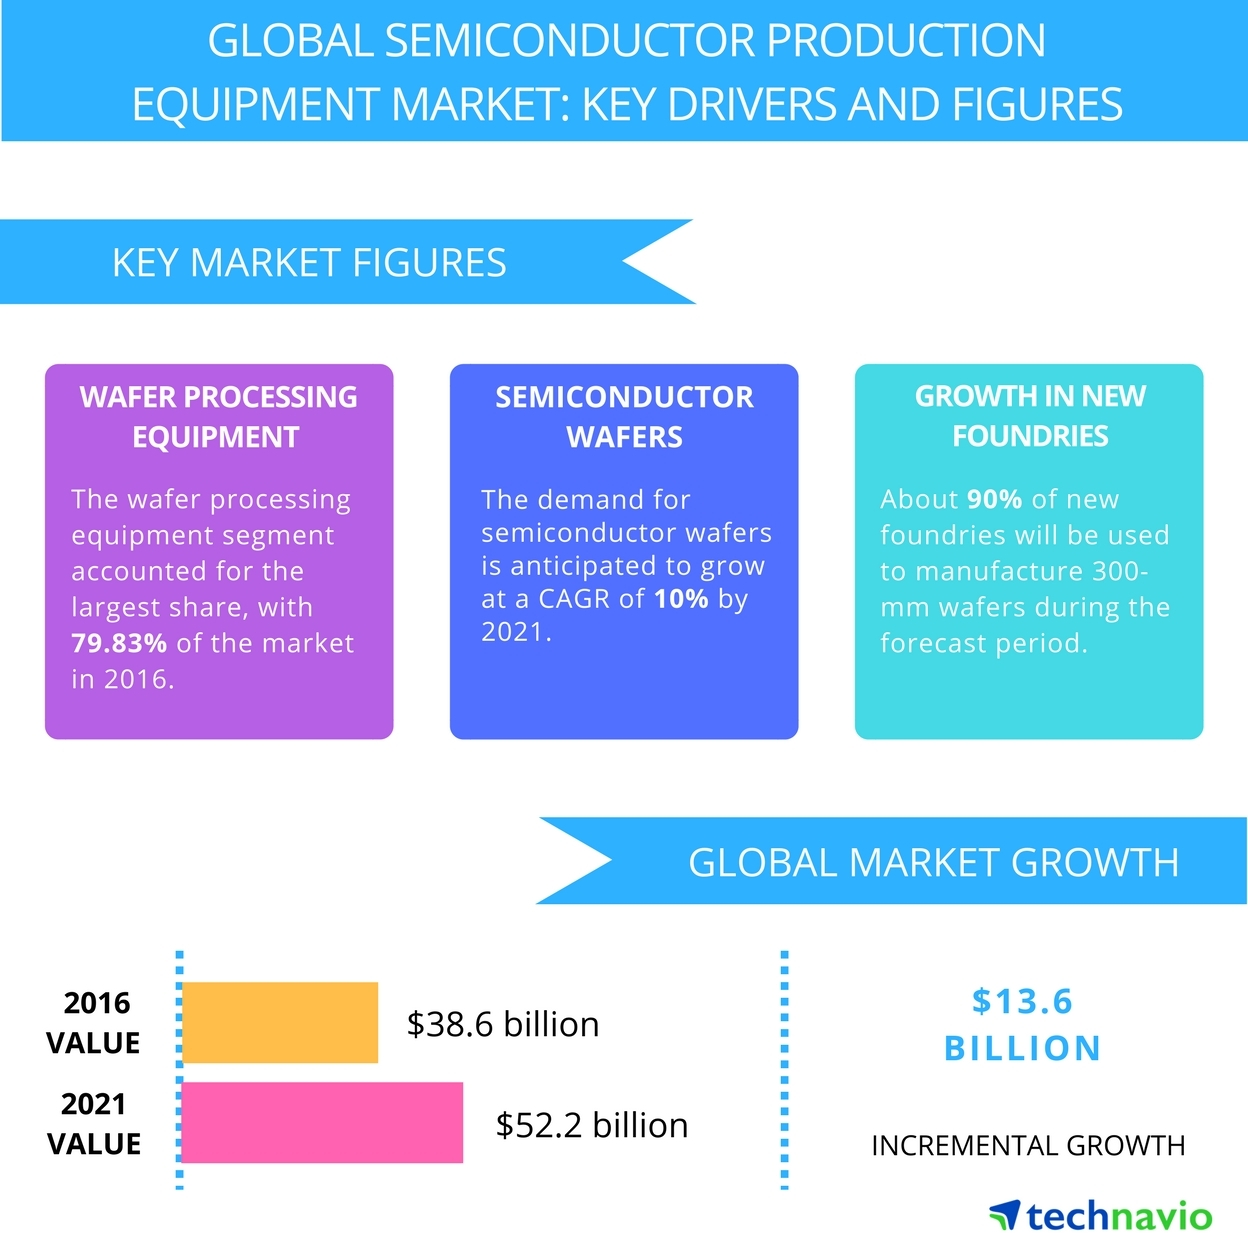 Top 5 Vendors in the Semiconductor Production Equipment